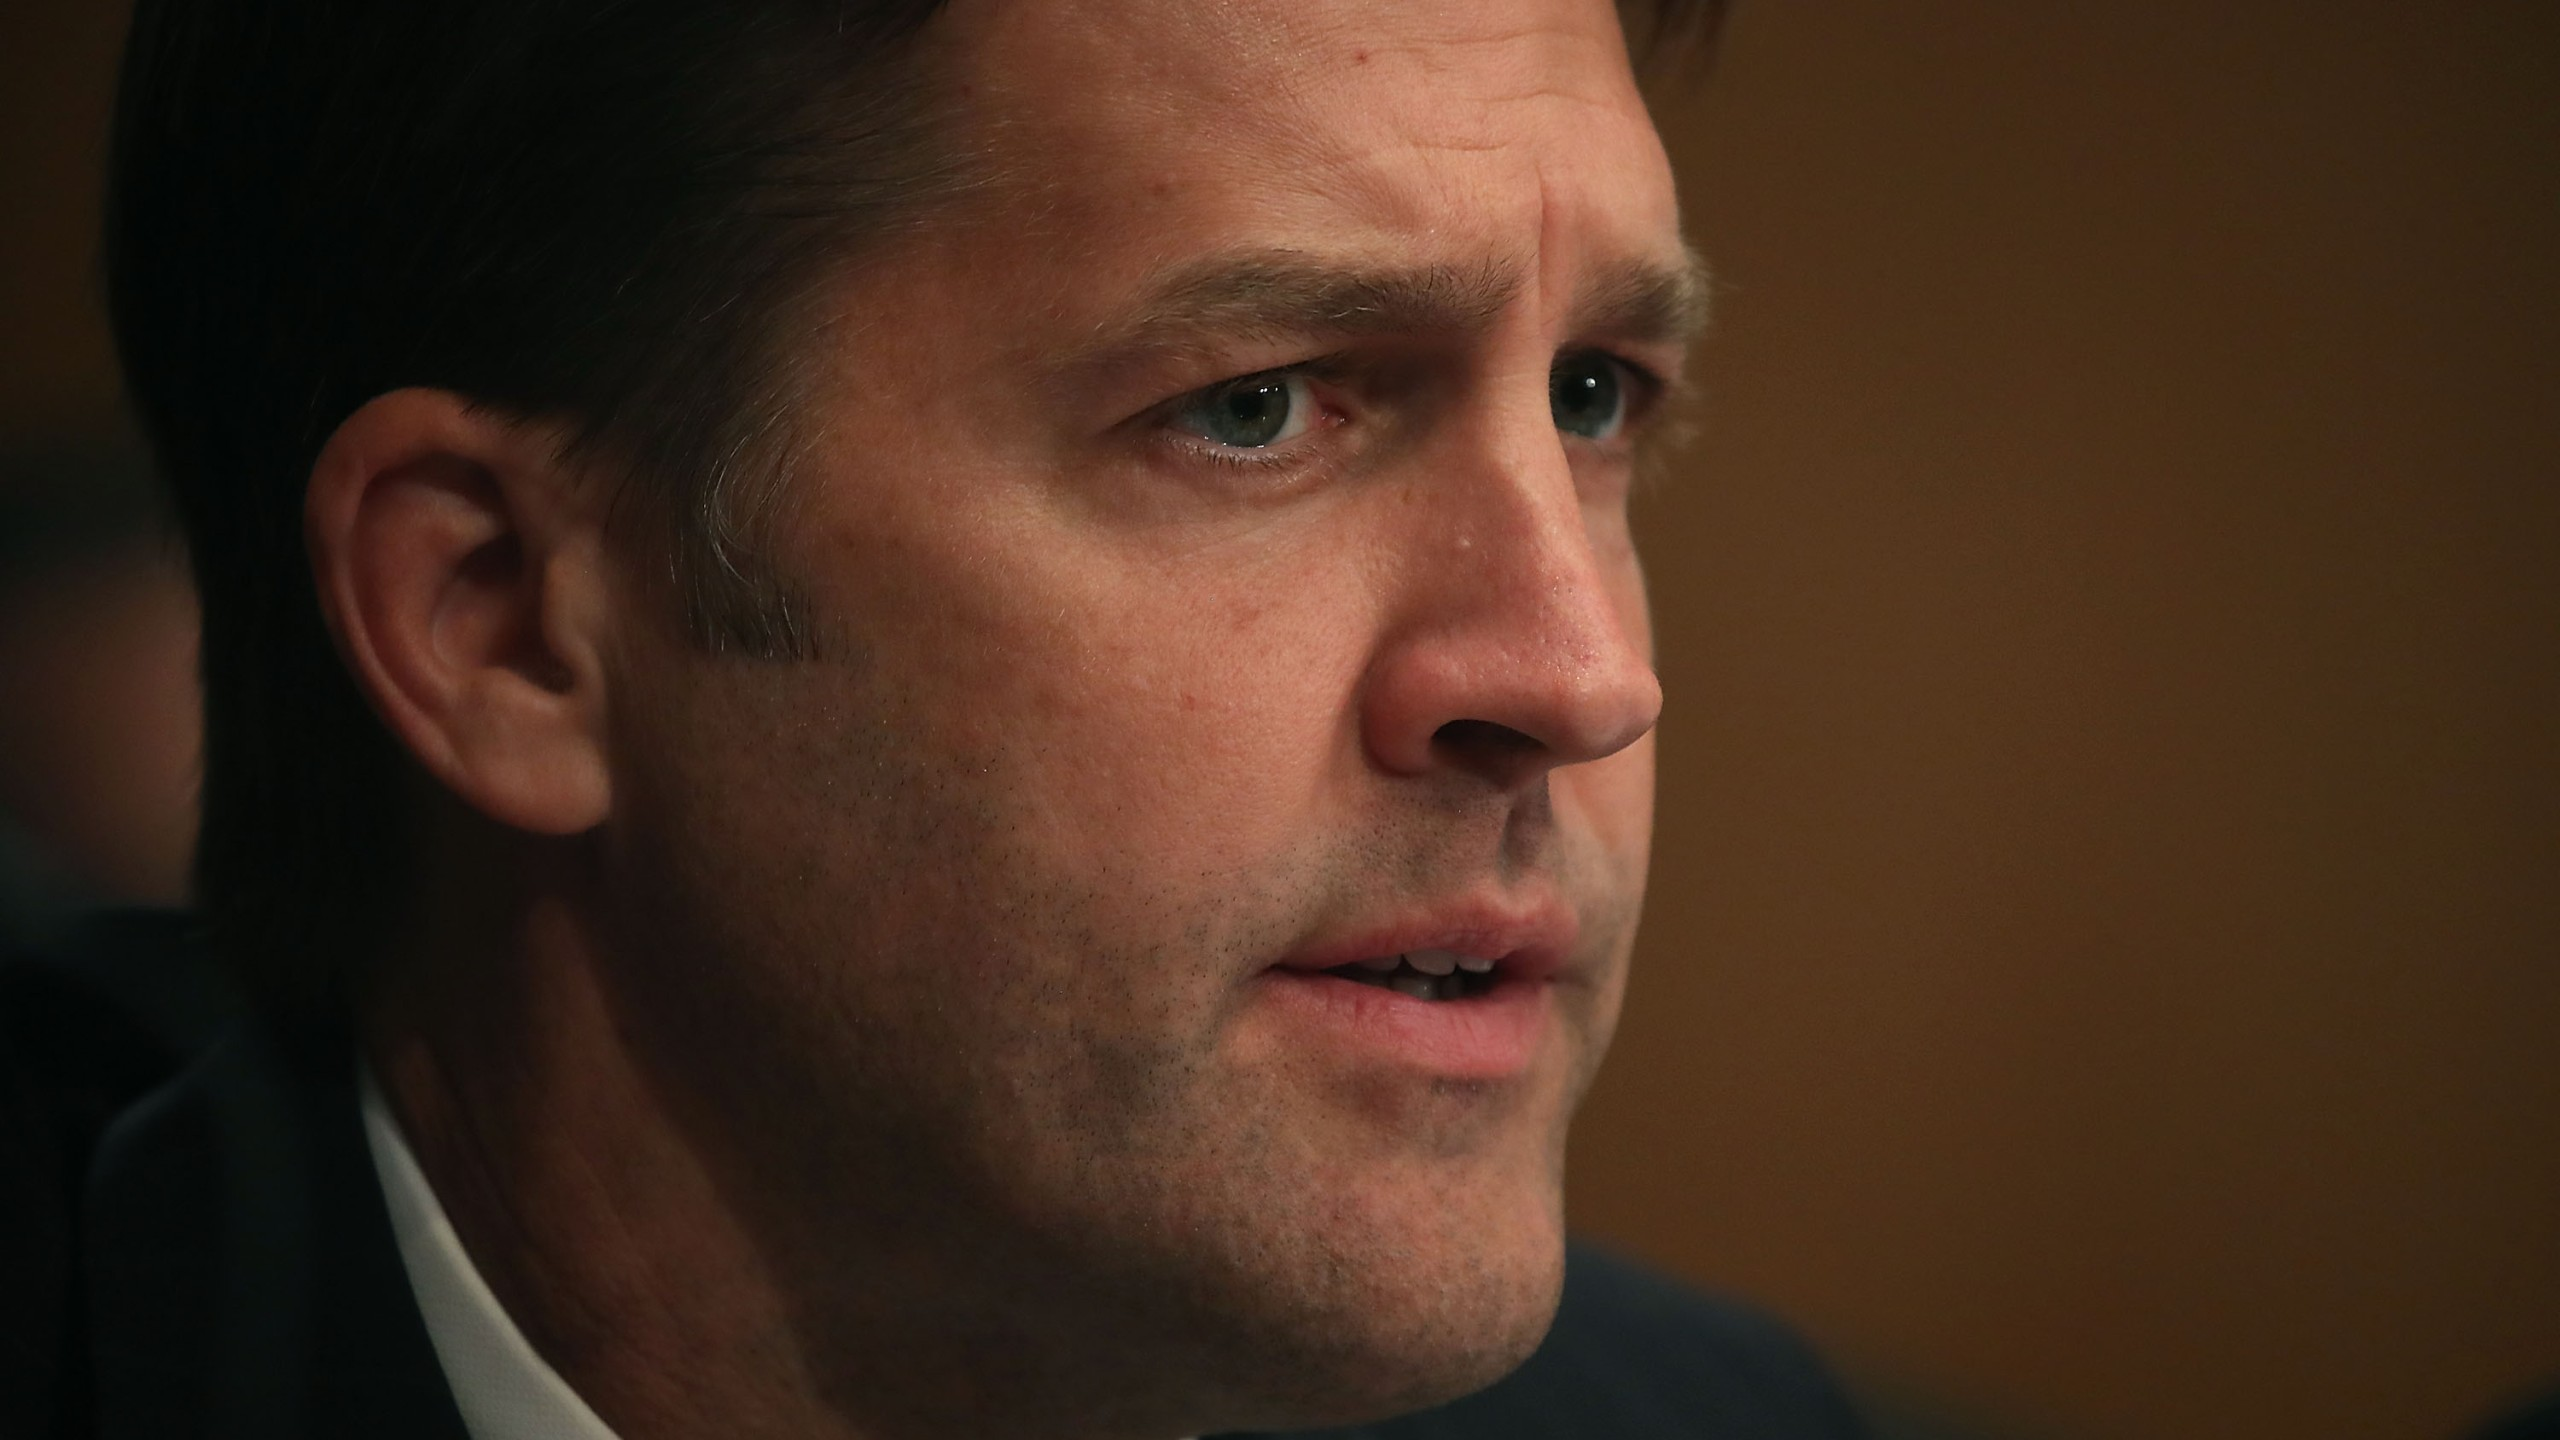 Sen. Ben Sasse, R-NE, listens during a hearing in the Hart Senate Office Building on Capitol Hill on Oct. 4, 2017 in Washington, D.C. (Credit: Mark Wilson/Getty Images)